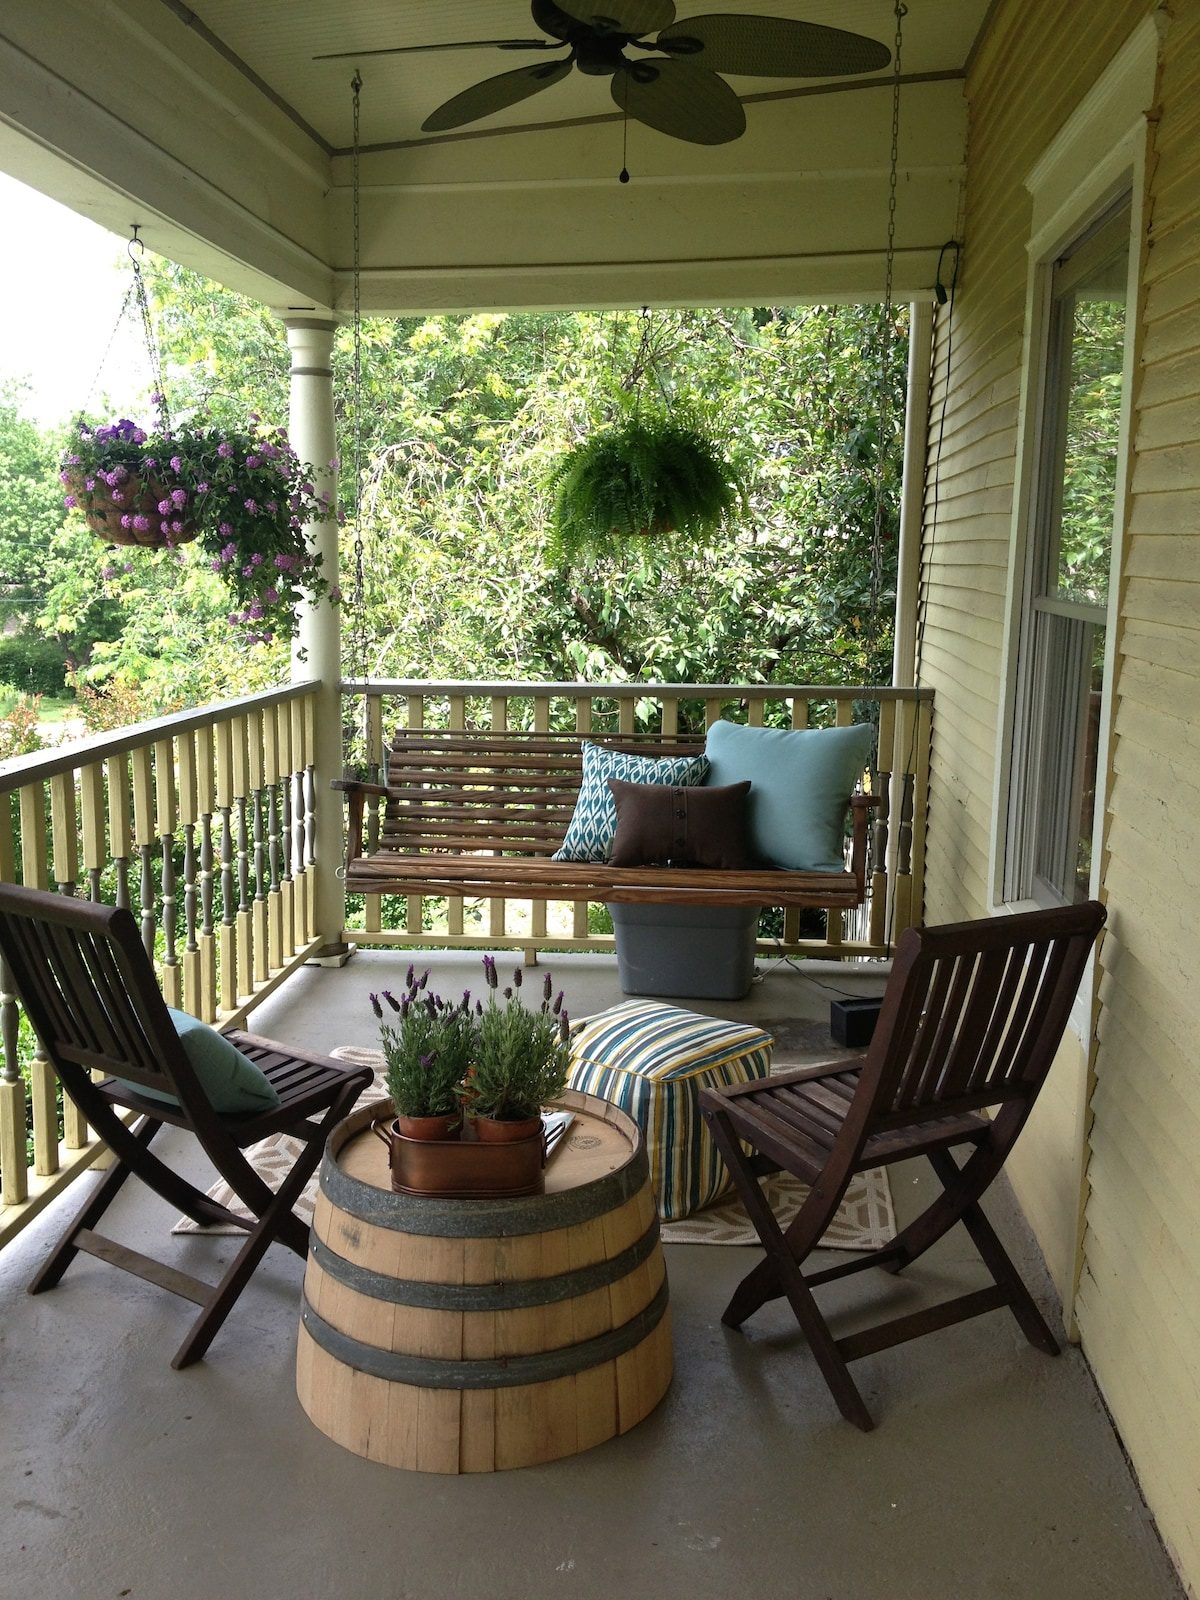 Front porch for a little tea drinking and people watching